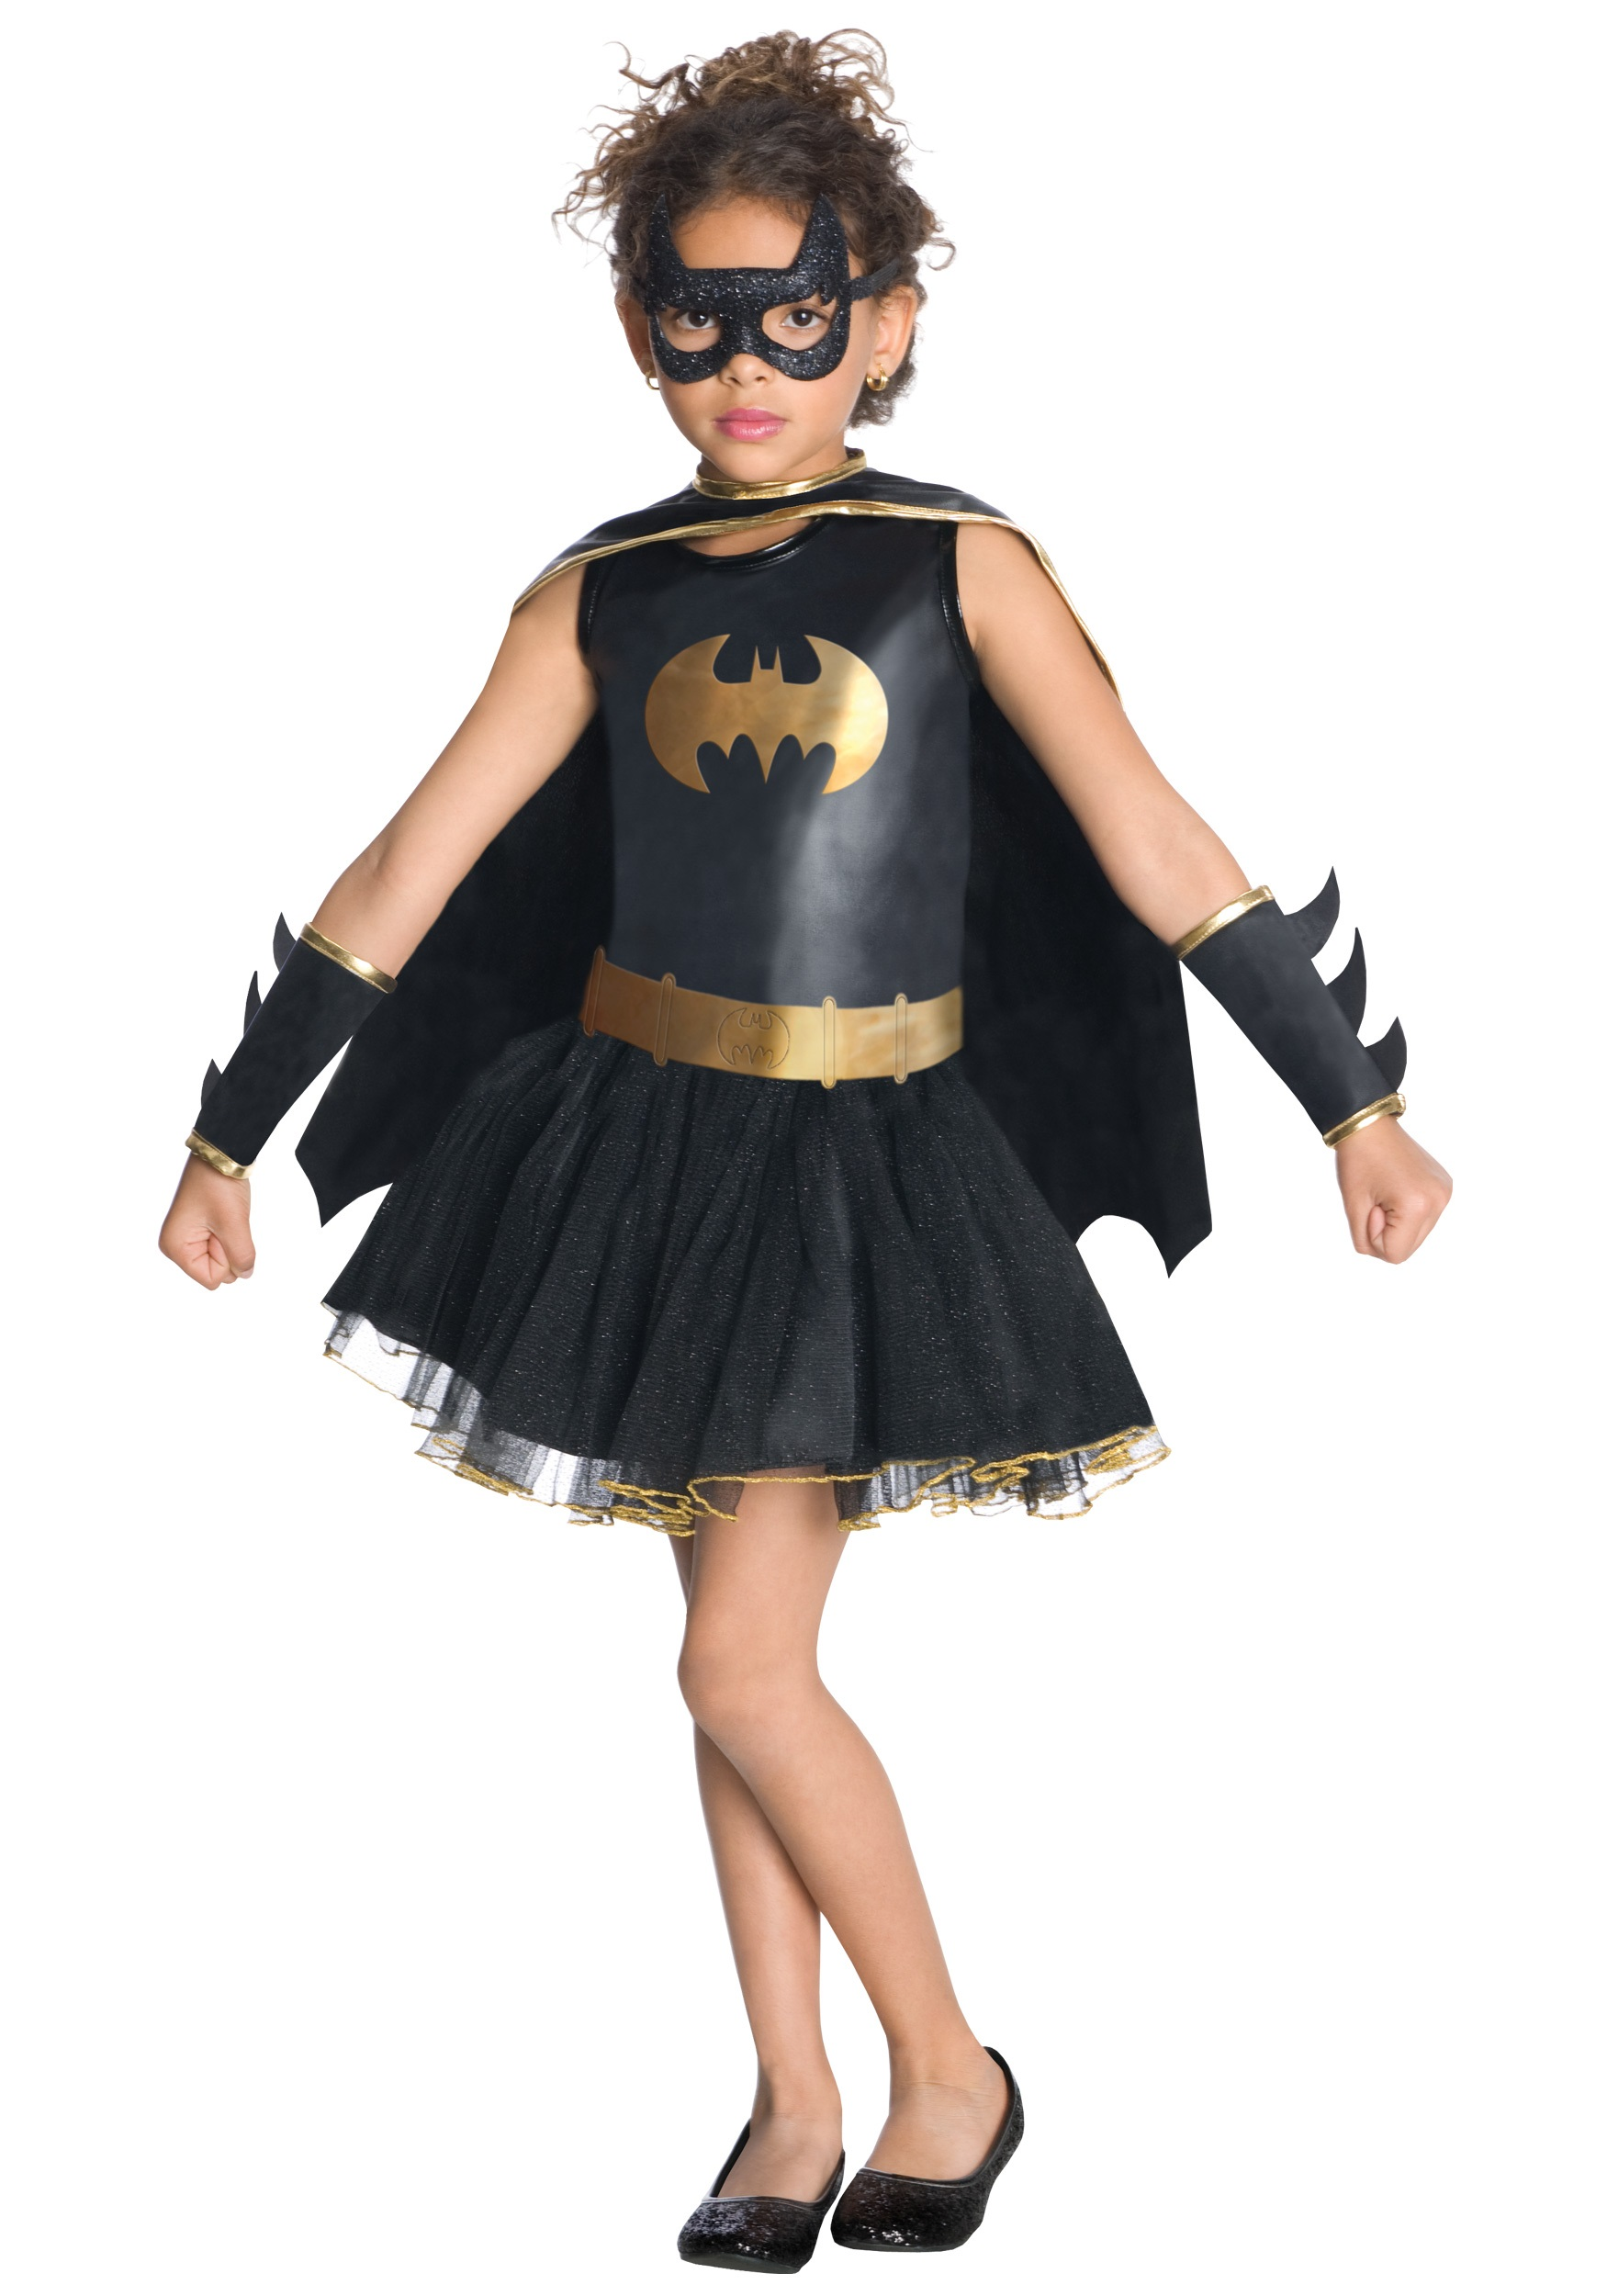 sc 1 st  Halloween Costumes : bat girl costume for kids  - Germanpascual.Com